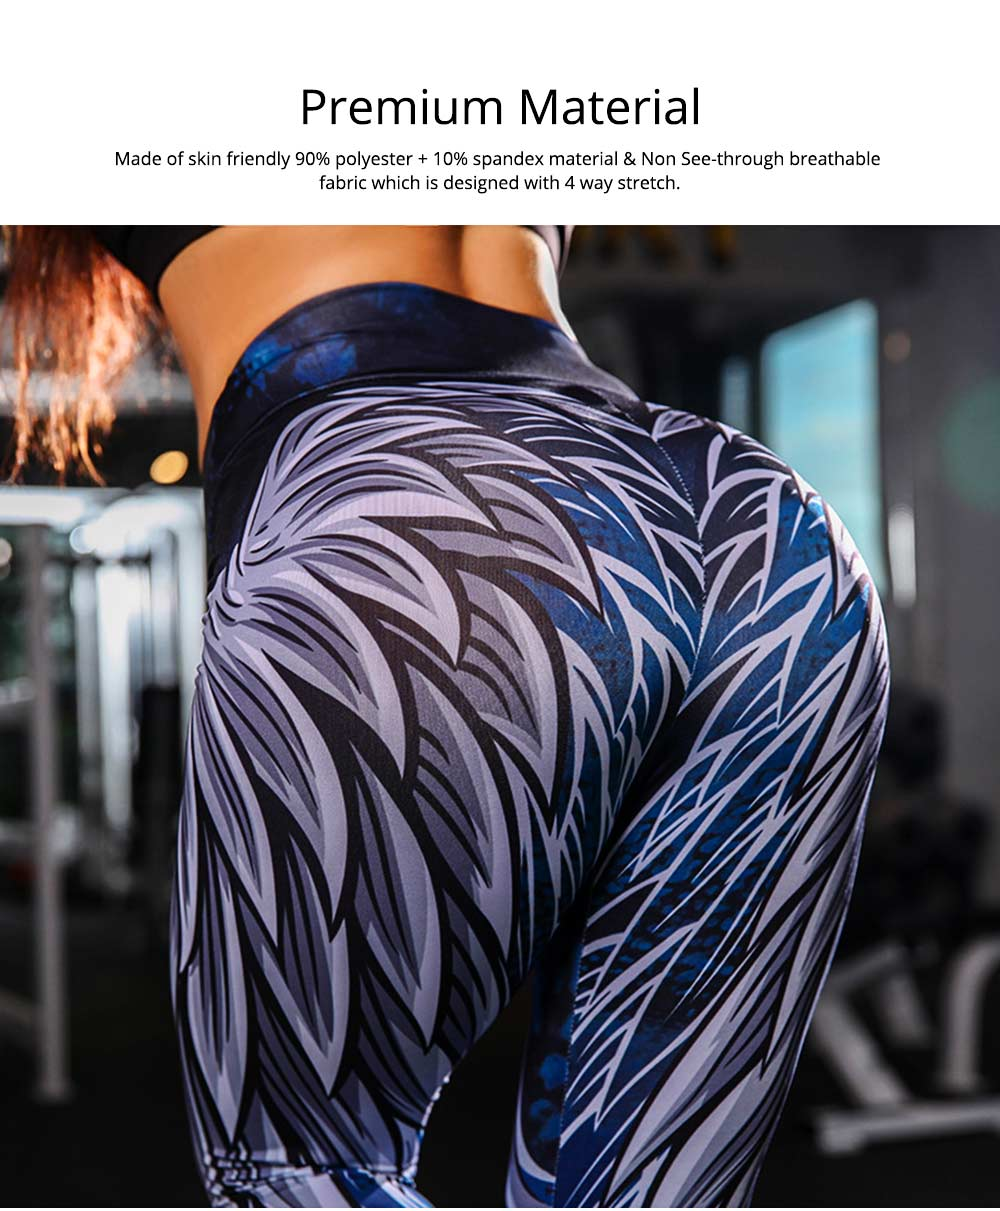 High Waist Yoga Pants Tummy Control Workout Leggings Digital 3D Wing Print Cropped Leggings for Women 3